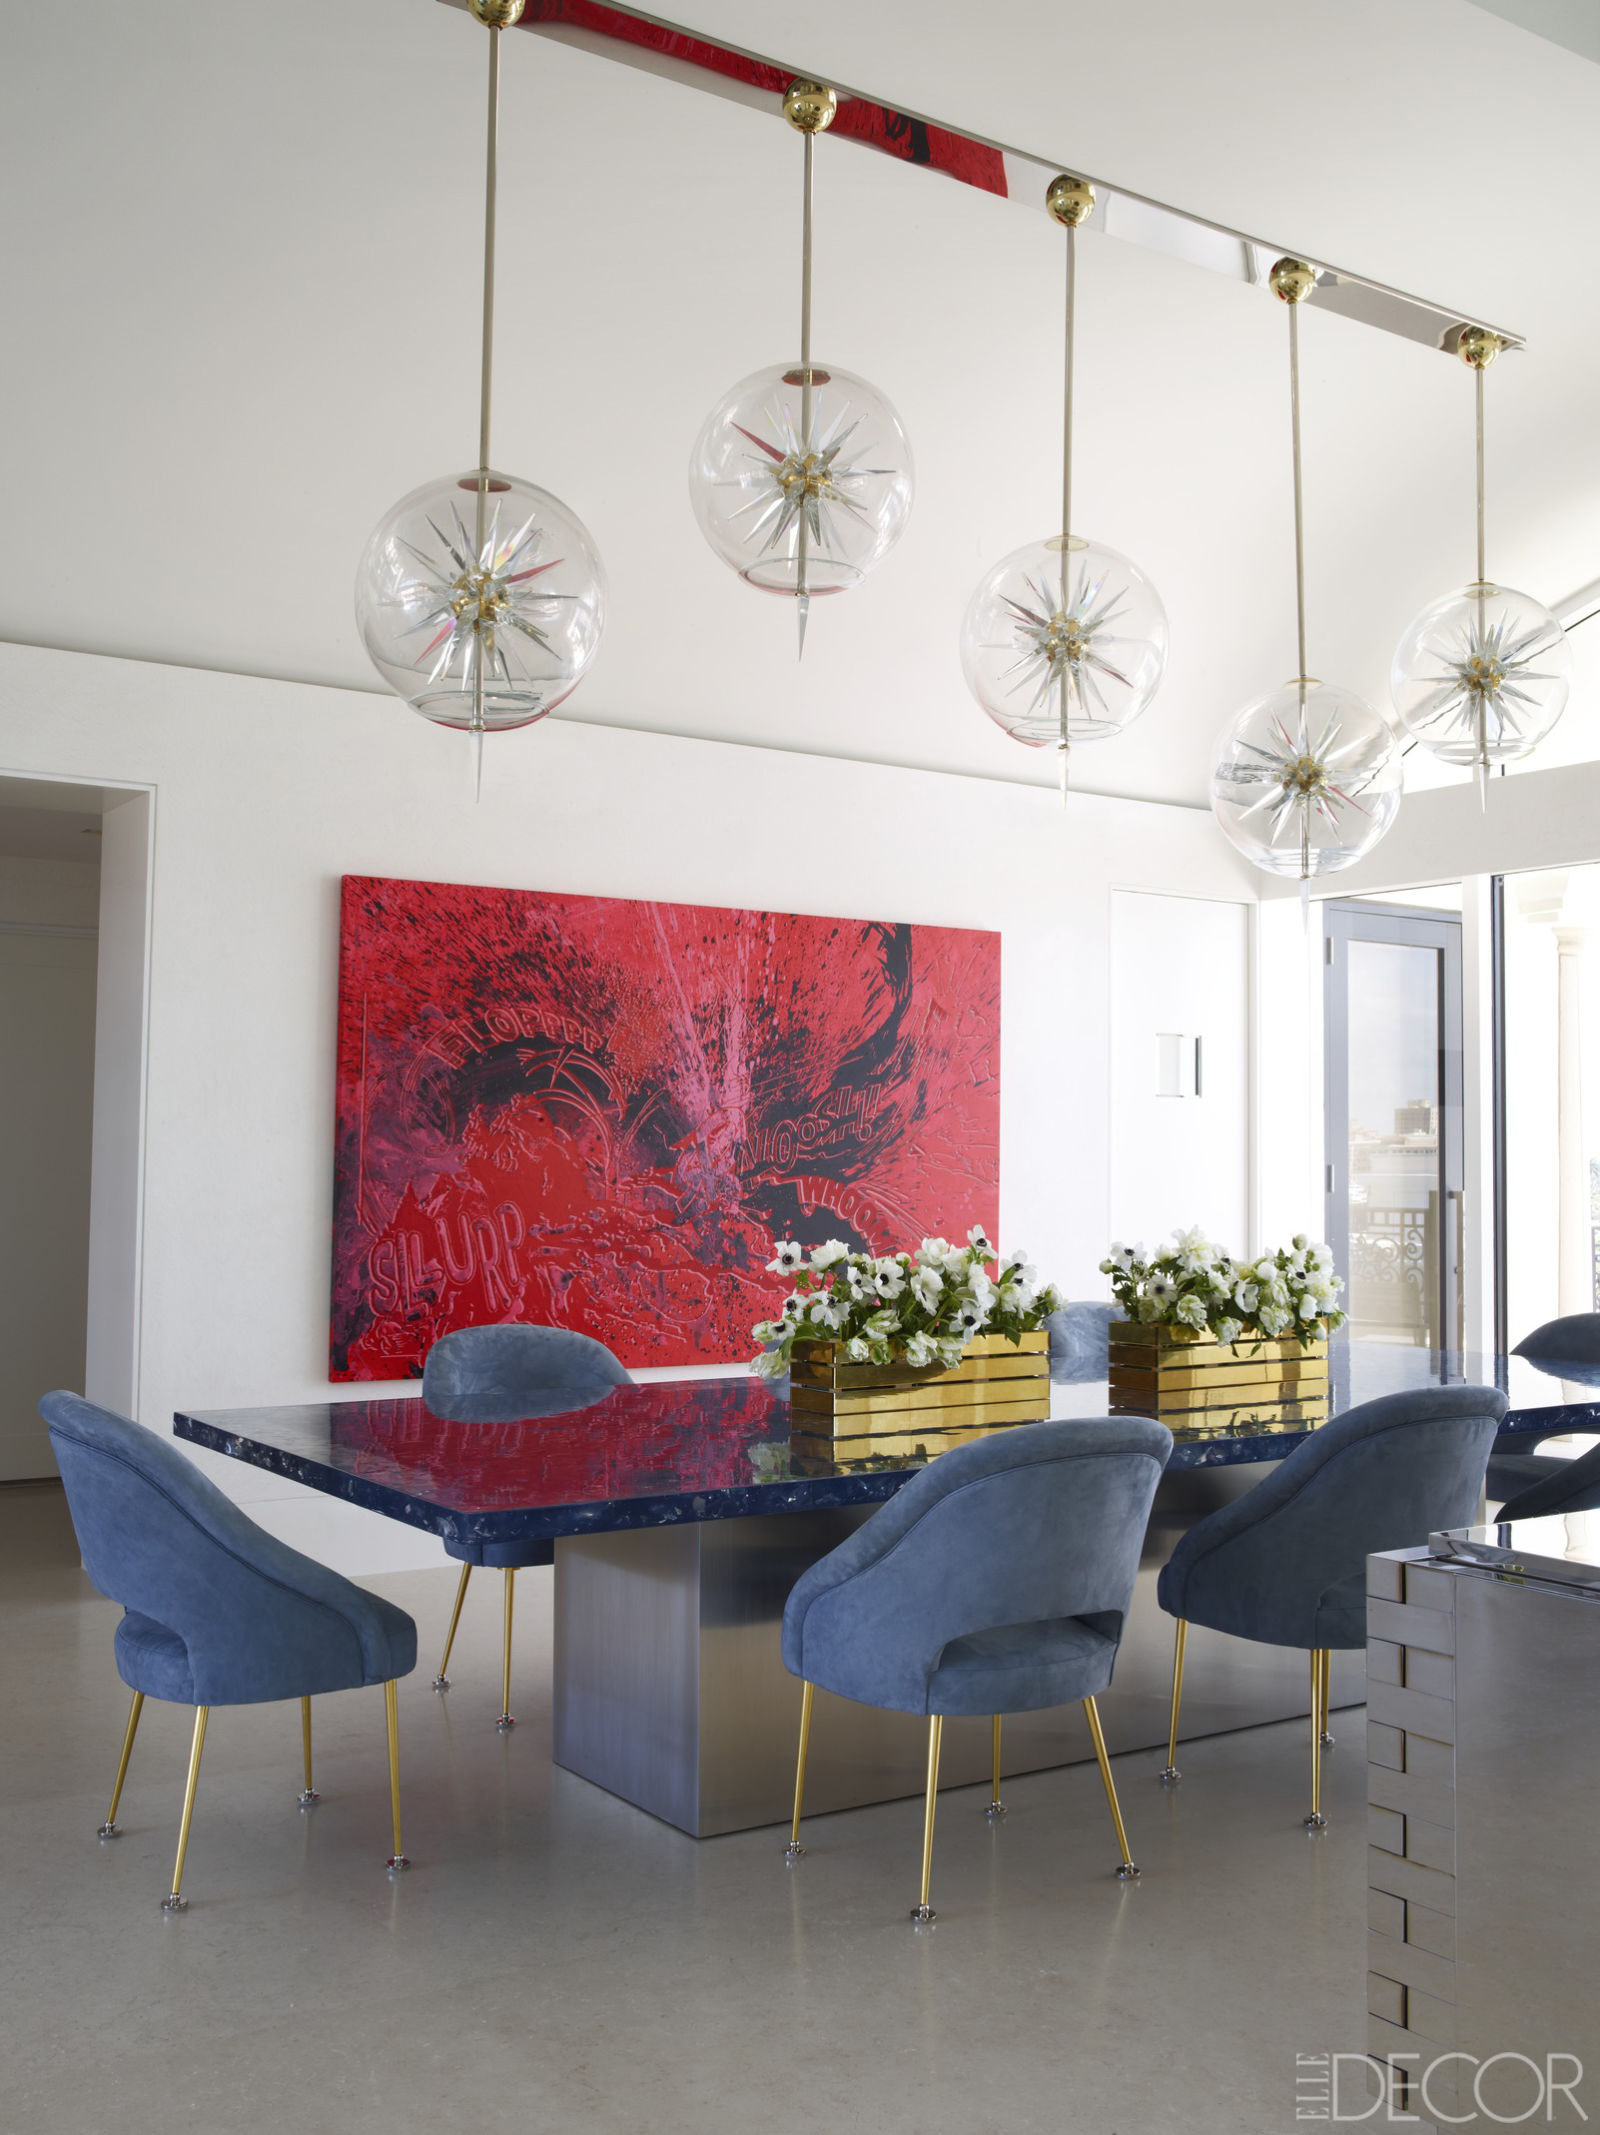 10 Dining Room Ideas to Inspire Yourself by Elle Décor 7 Dining Room Ideas 10 Dining Room Ideas to Inspire Yourself by Elle Décor 10 Dining Room Ideas to Inspire Yourself by Elle D  cor 7